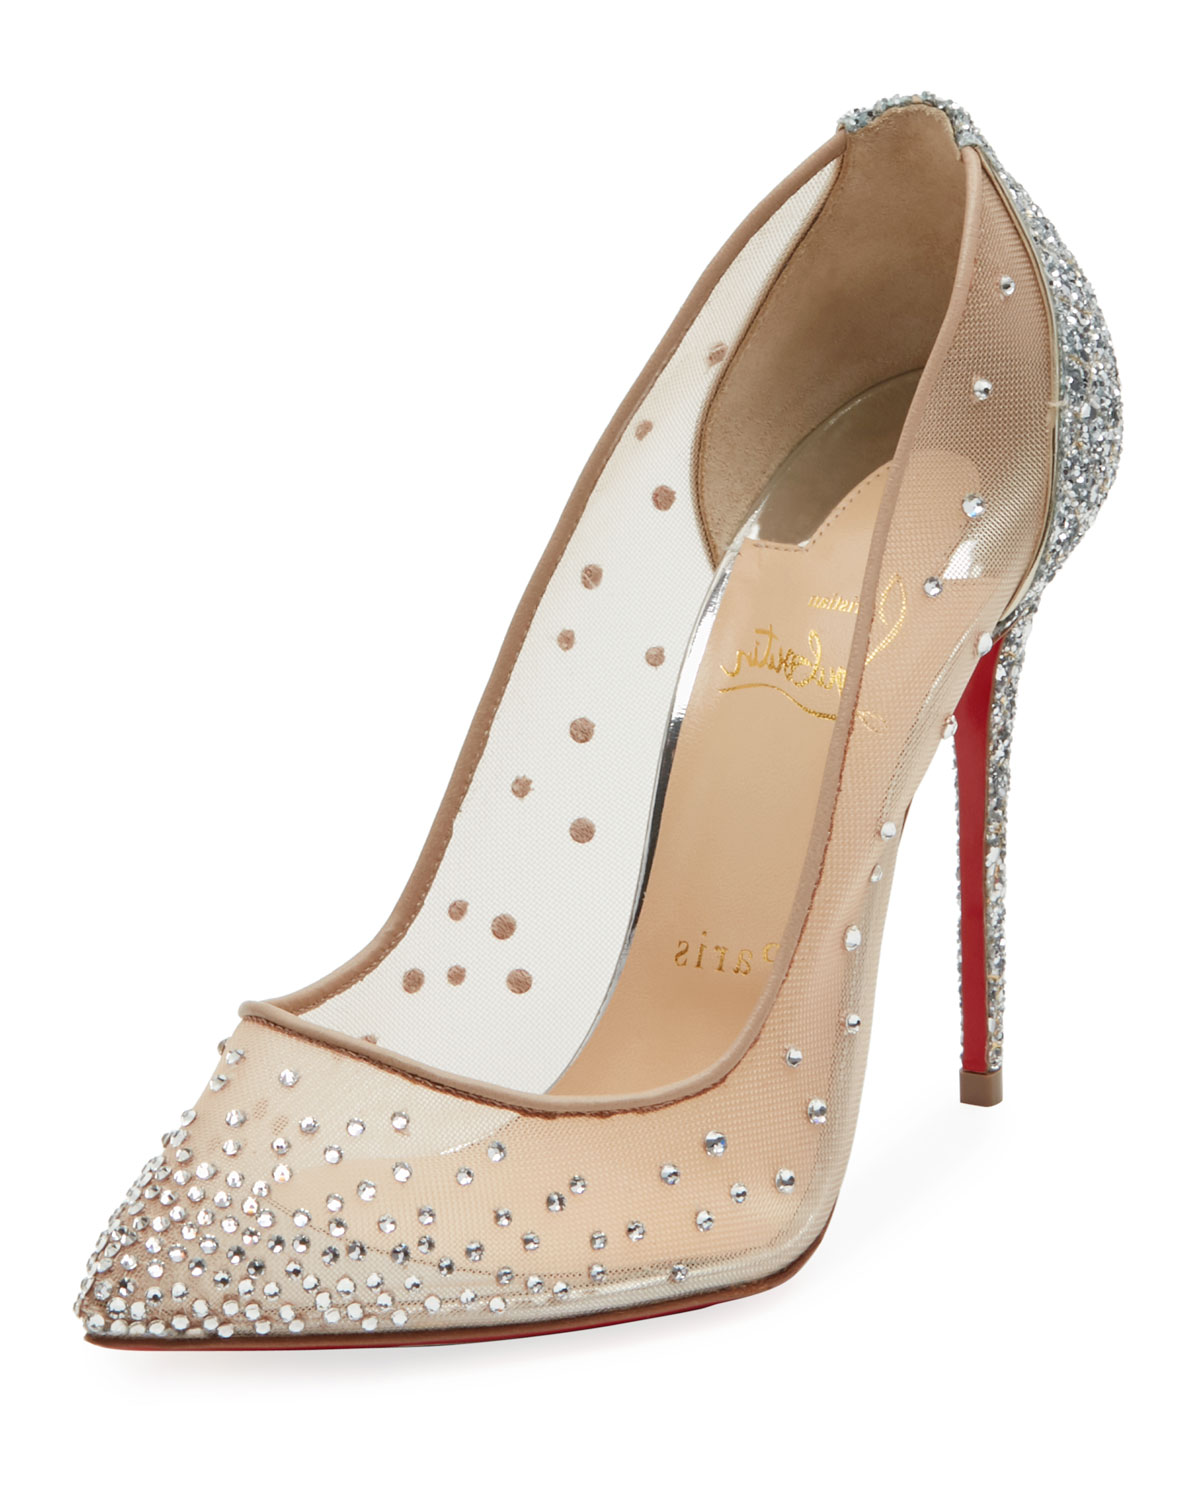 meet f59c3 37537 Follies Strass Mixed Red Sole Pumps